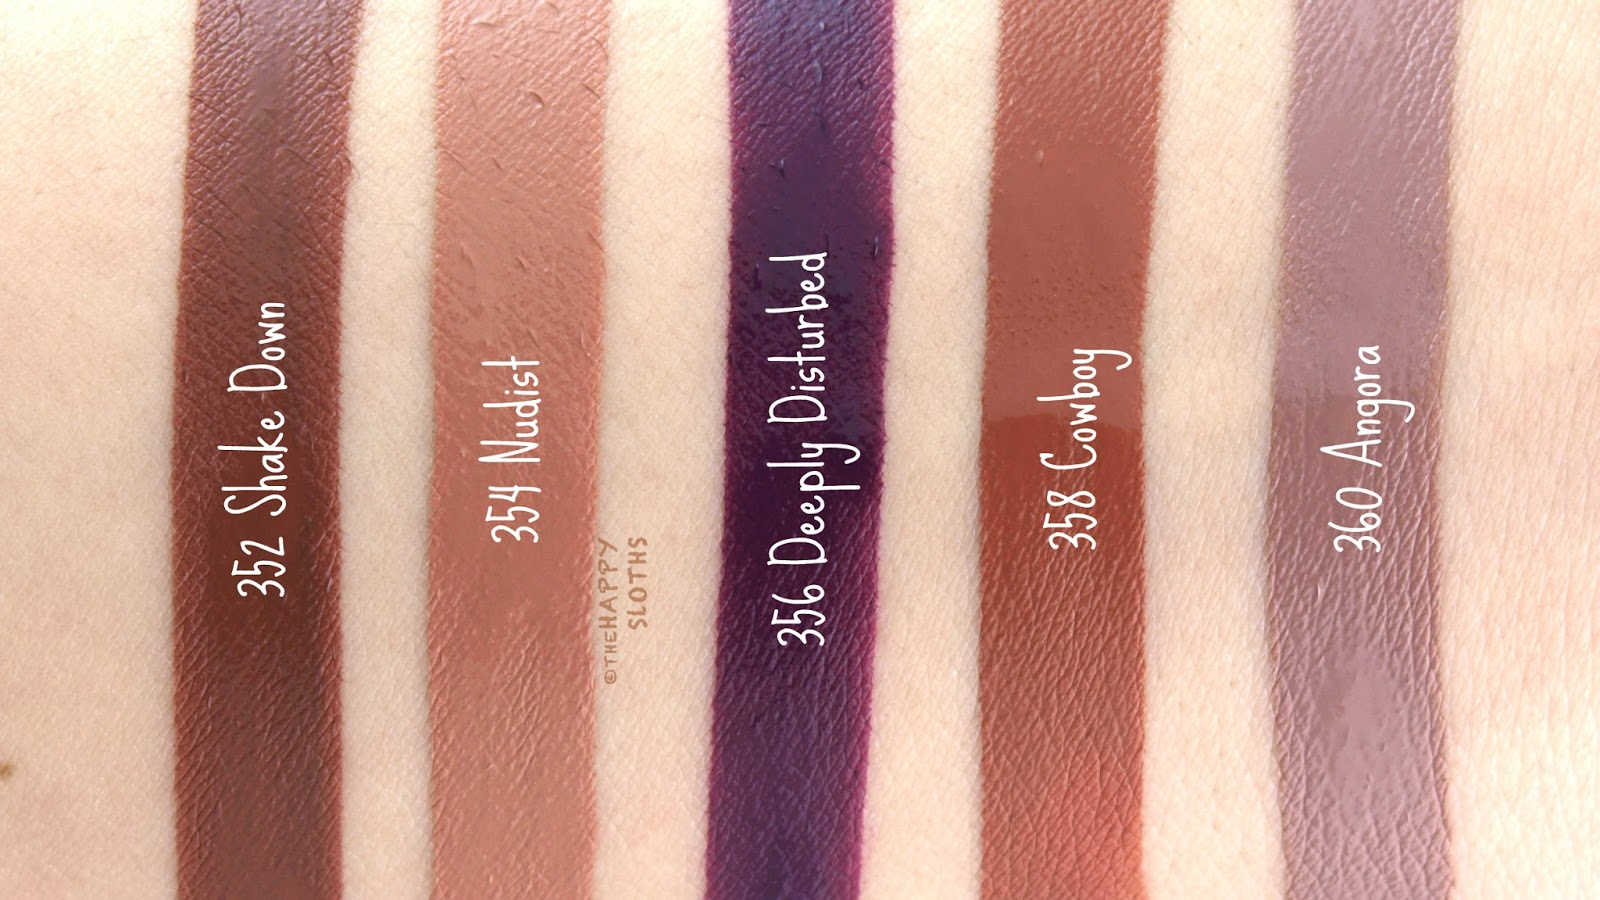 L'Oreal Infallible Pro Matte Liquid Lipsticks: Review and Swatches